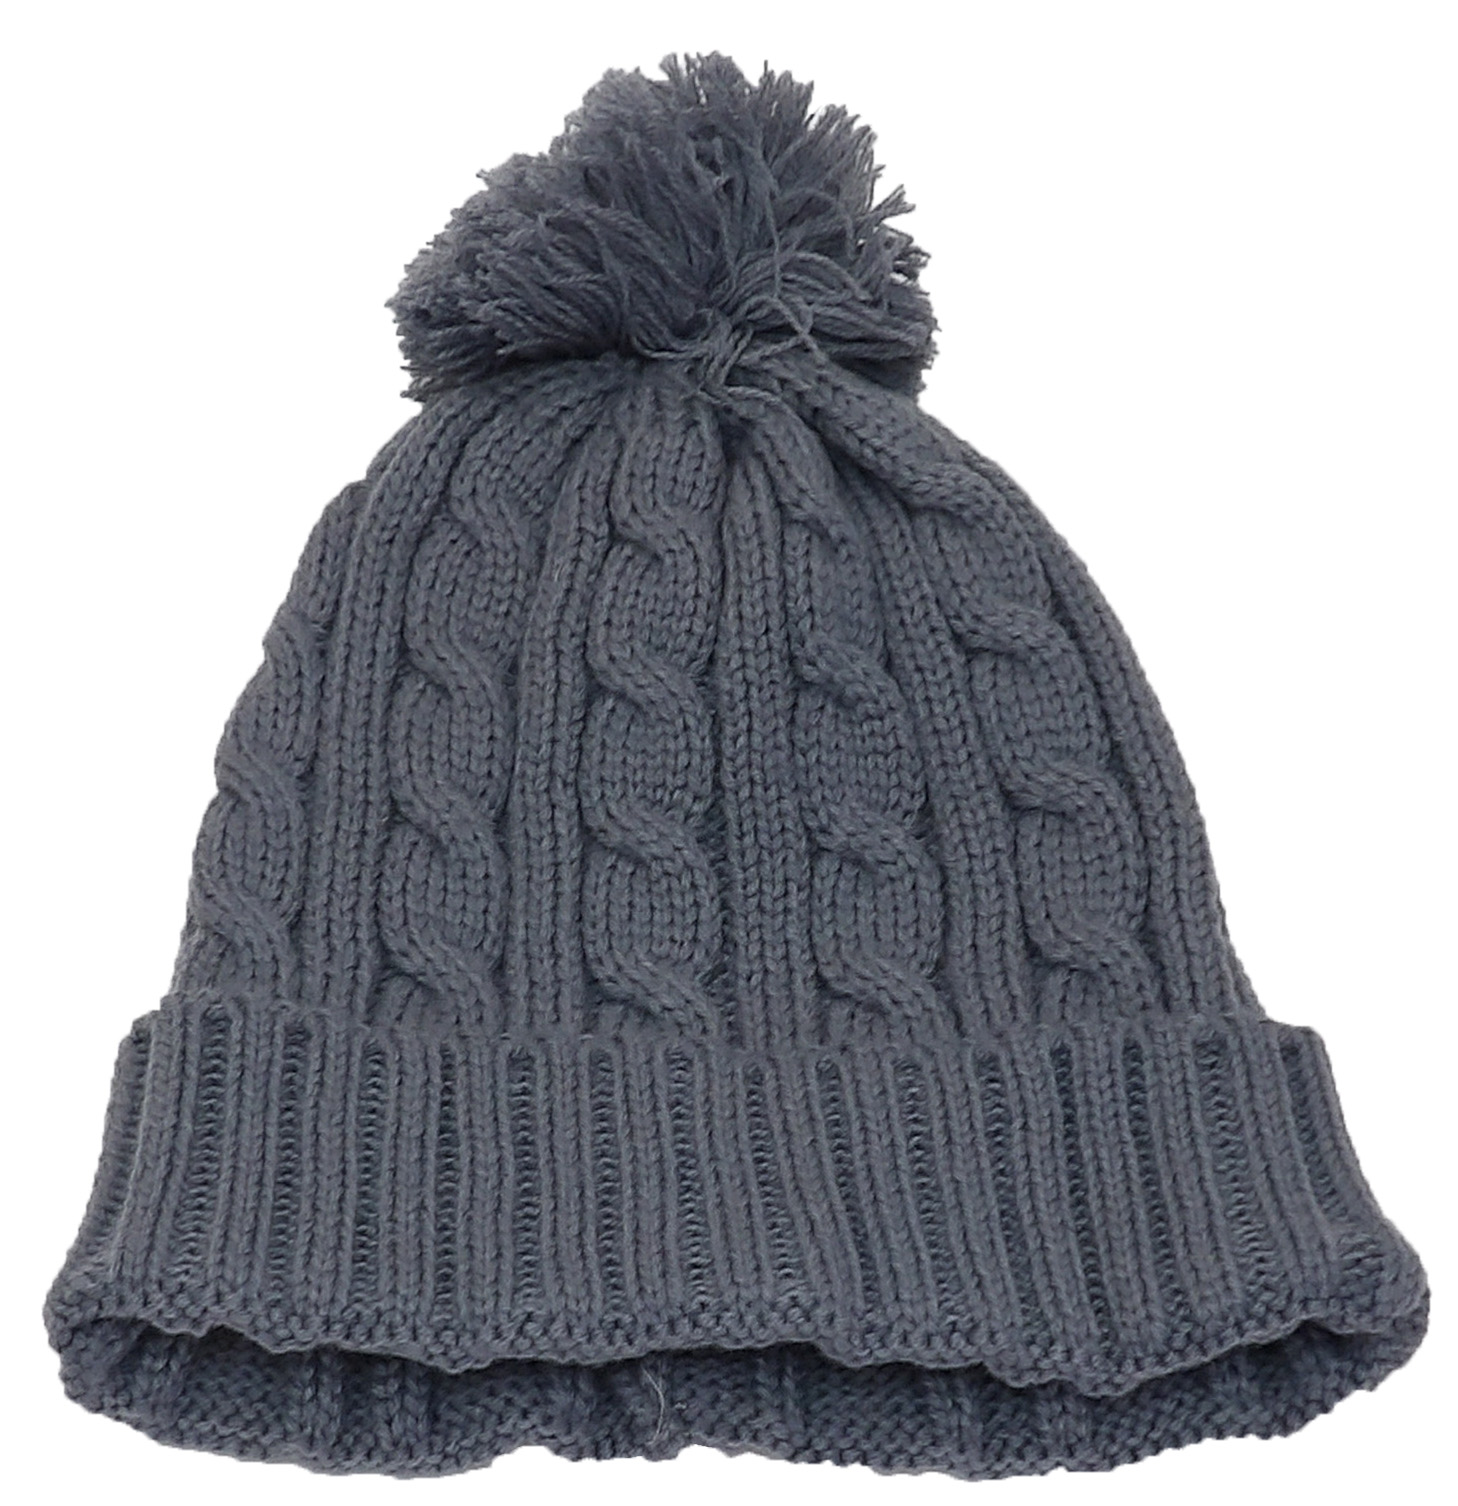 1f4affe8a87 Best Winter Hats Womens Tight Cable Knit Cuffed Cap W/Pom